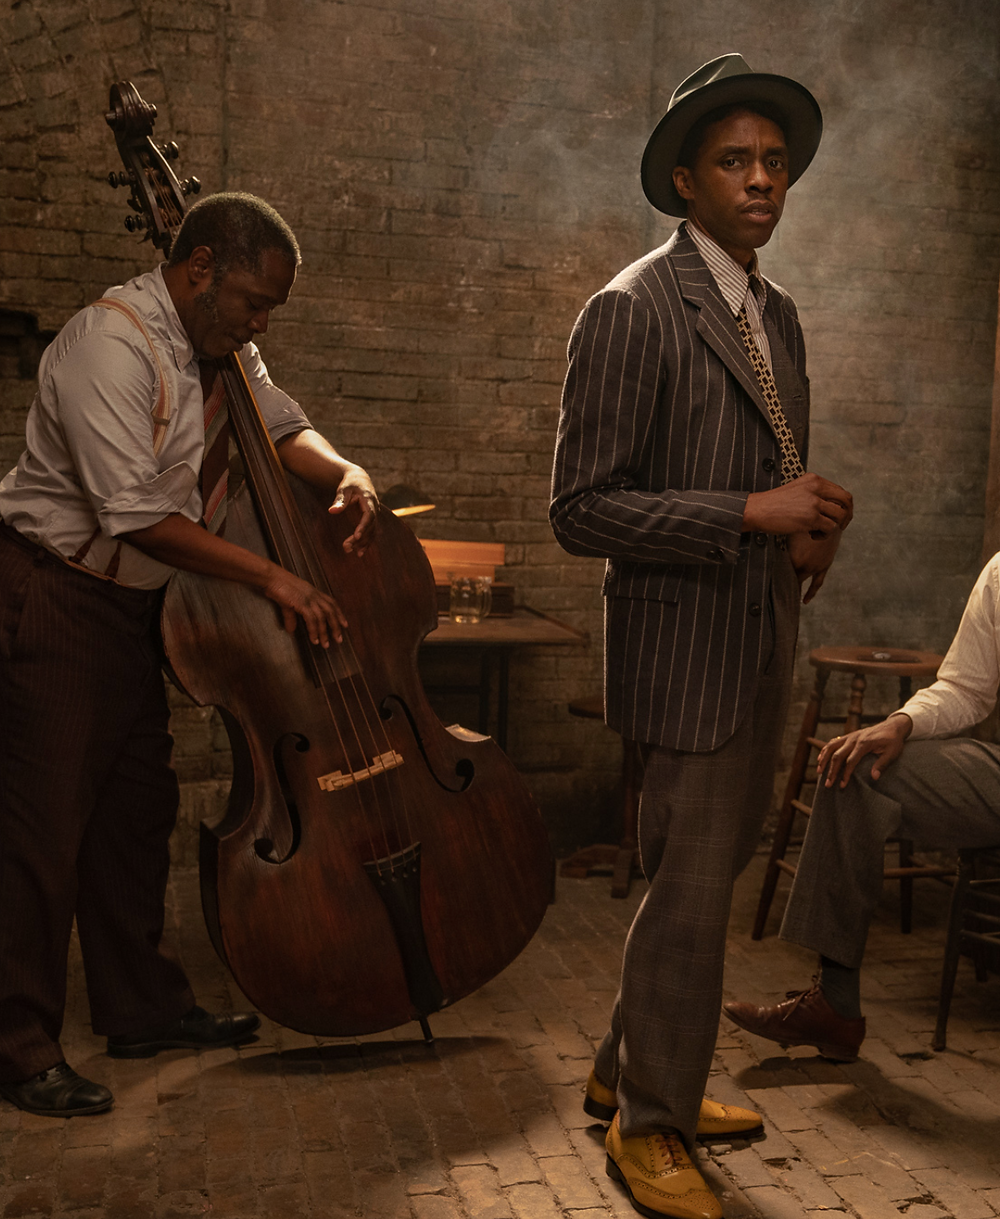 2 men dressed in 1920's attire stand in a dark room. One looks at the camera while the other plays a viola.